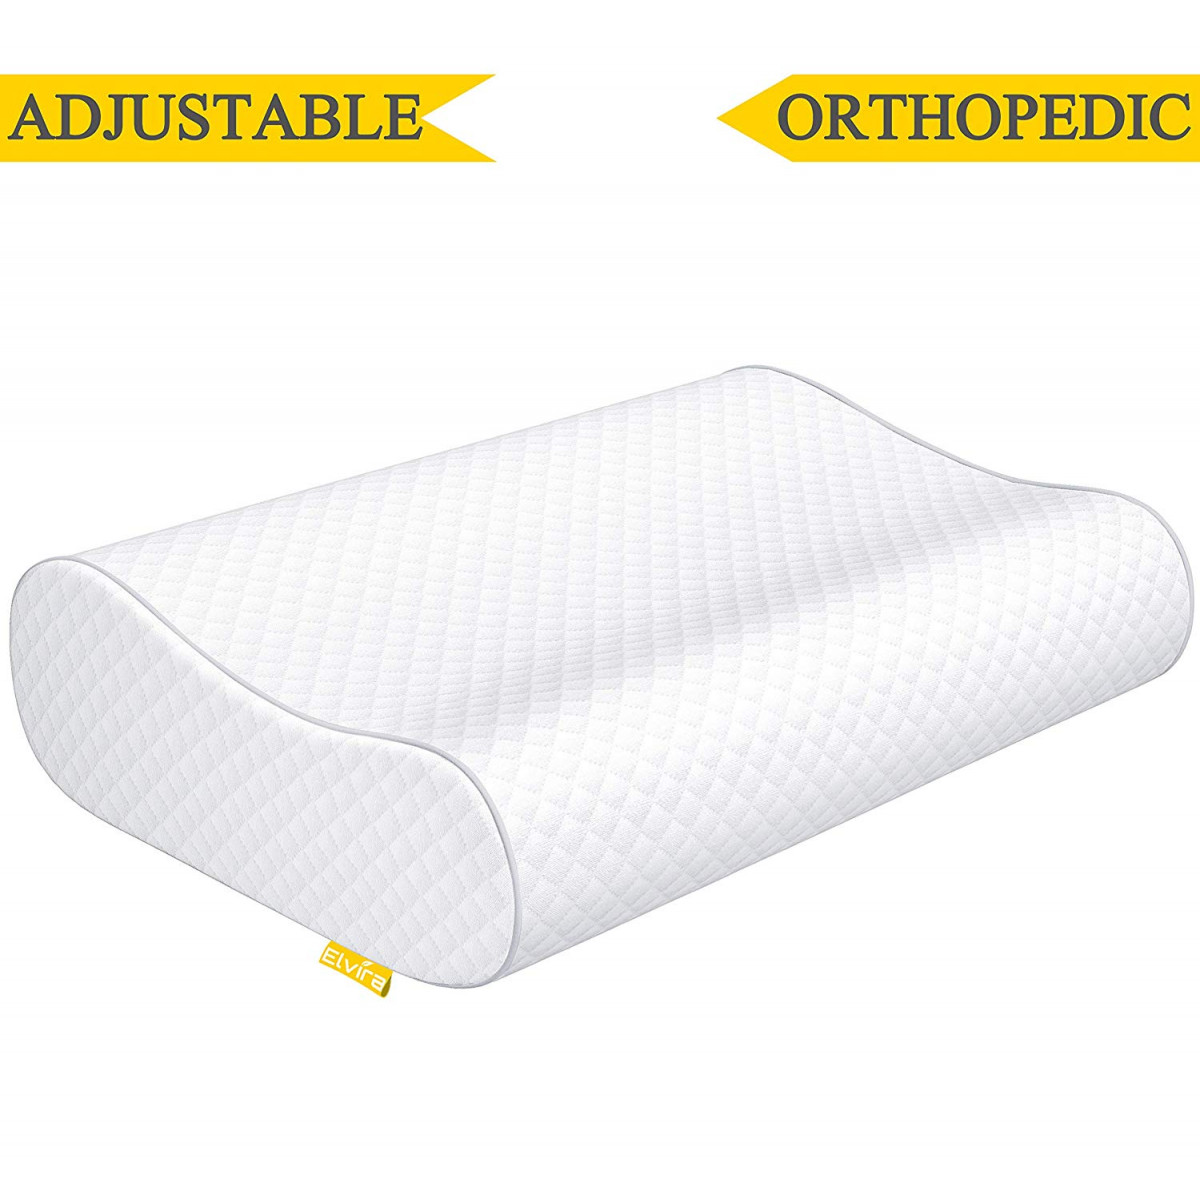 Orthopaedic Pillow Relieve Back Shoulder Head Neck Pain Non Allergenic Removable